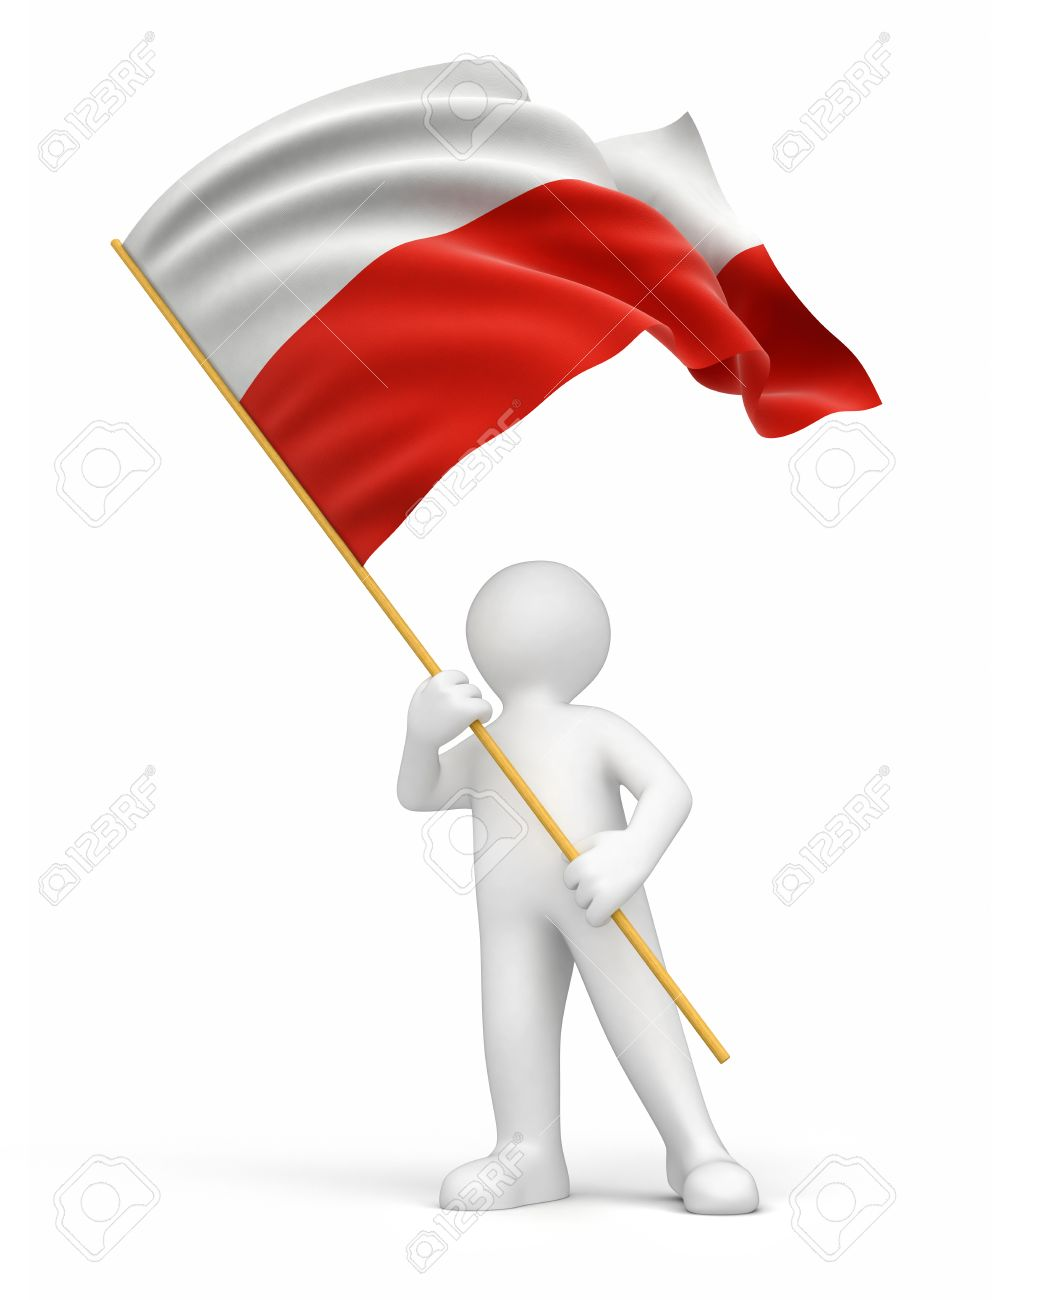 4 915 polish flag stock vector illustration and royalty free